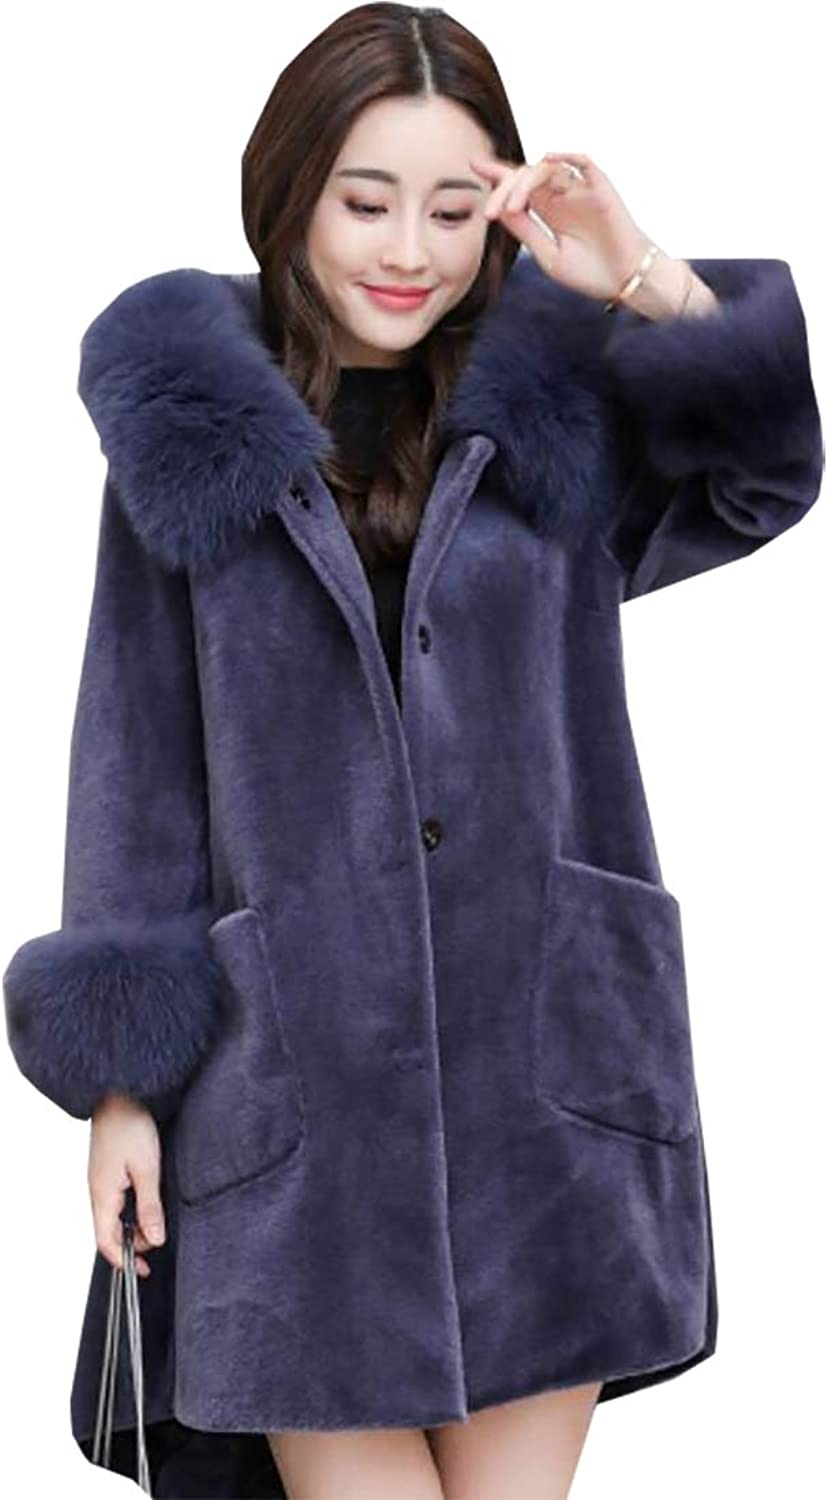 Generic Women's Warm Winter Faux Fur Hooded Parka Long Coat Jacket Top Outwear